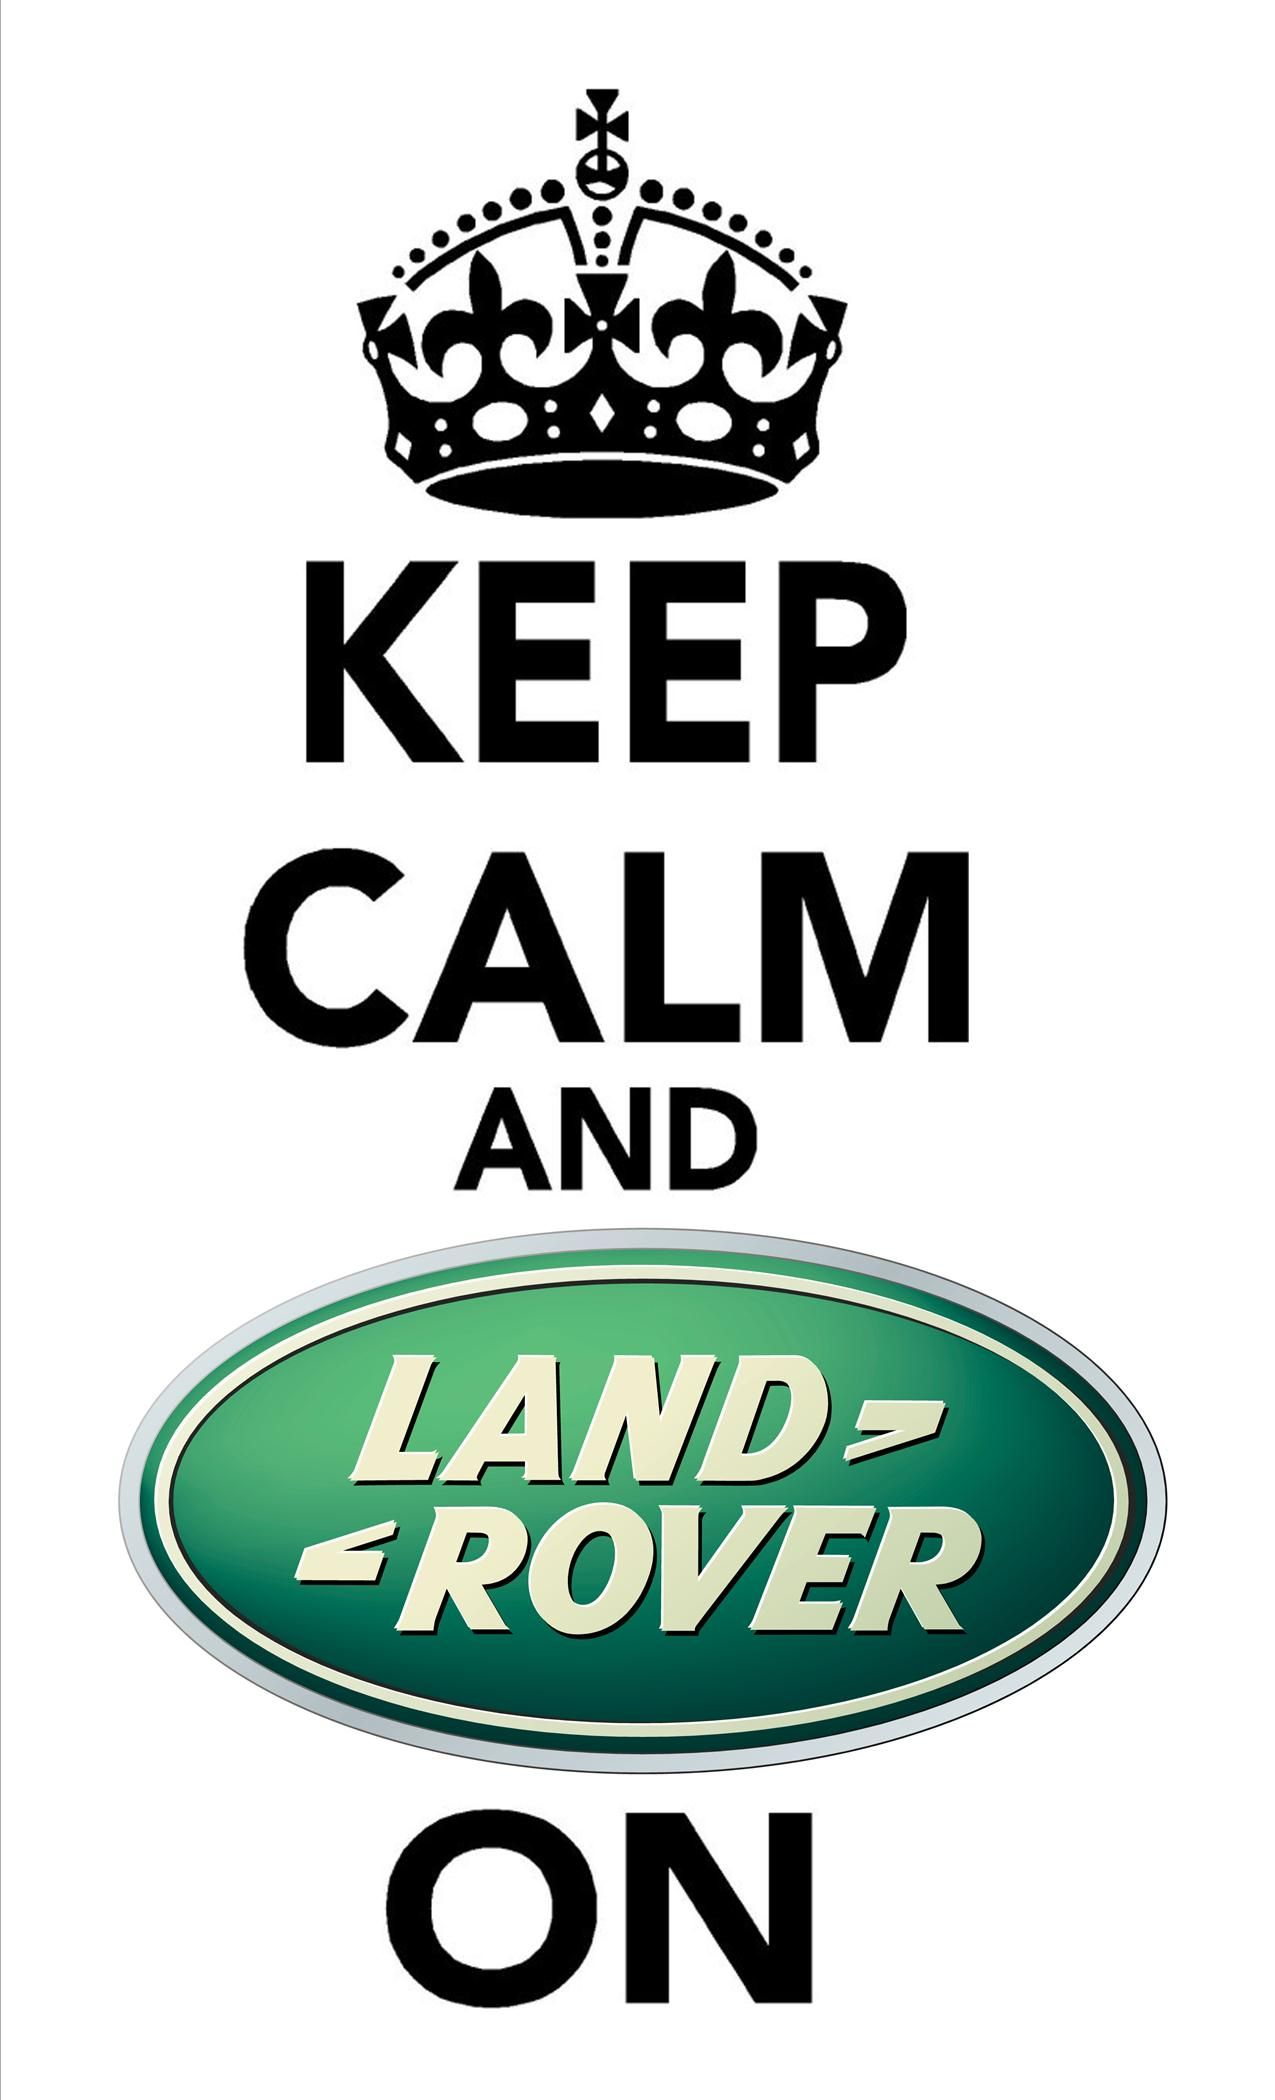 recycling landrover breakers car manual ltd rover online hand second diesel range hills salvage evoque parts land vehicle used rangeroverevoque details